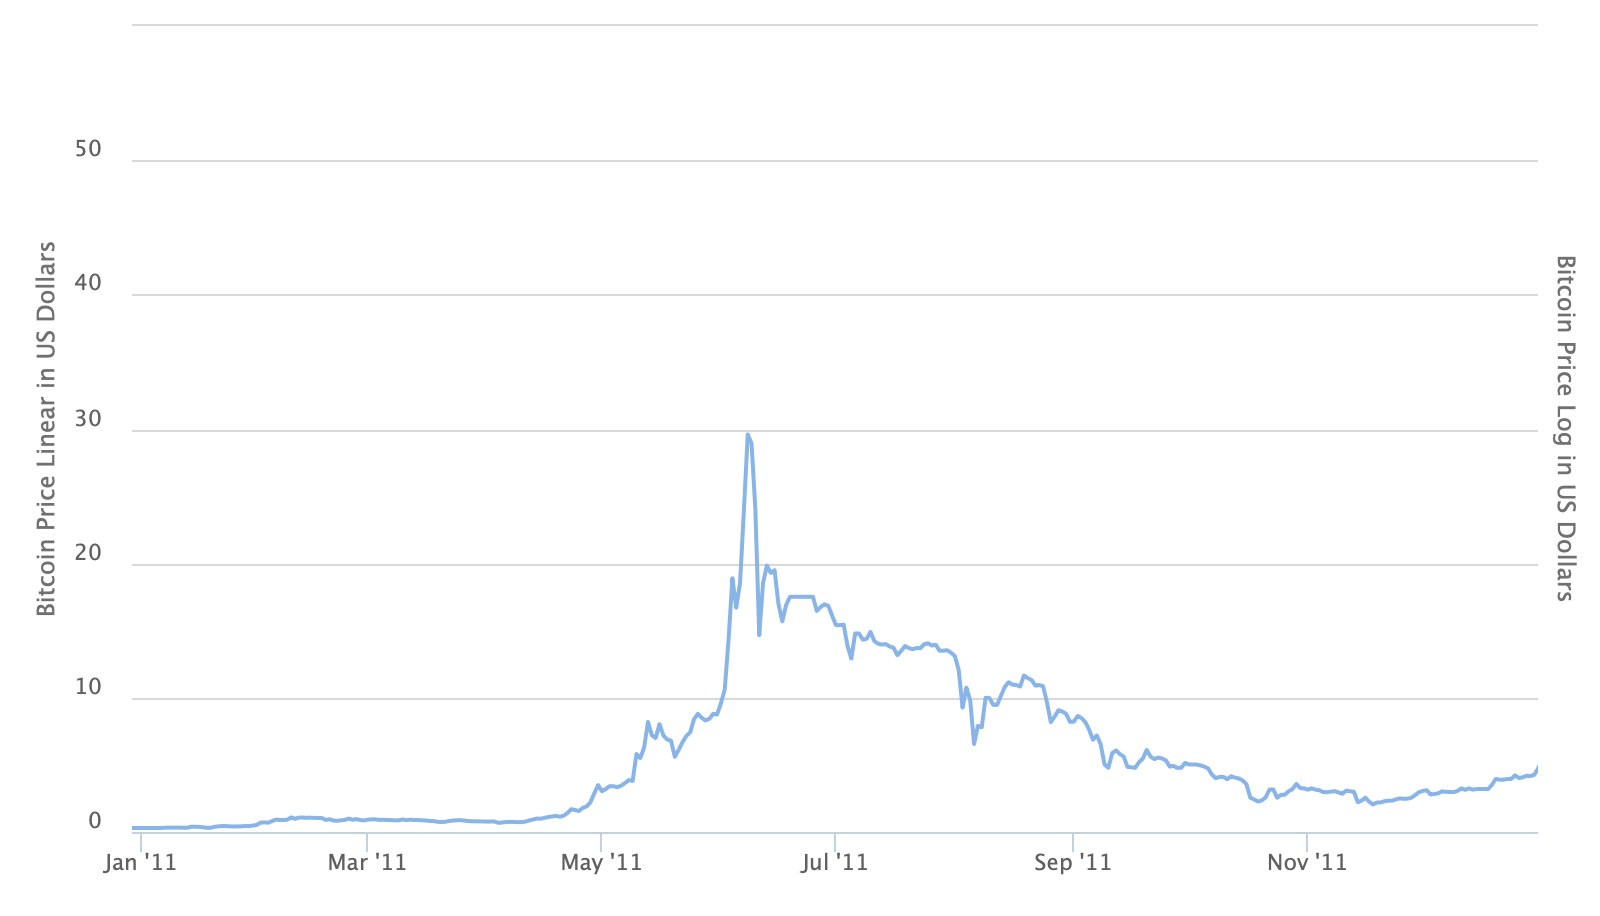 Bitcoin price in 2011